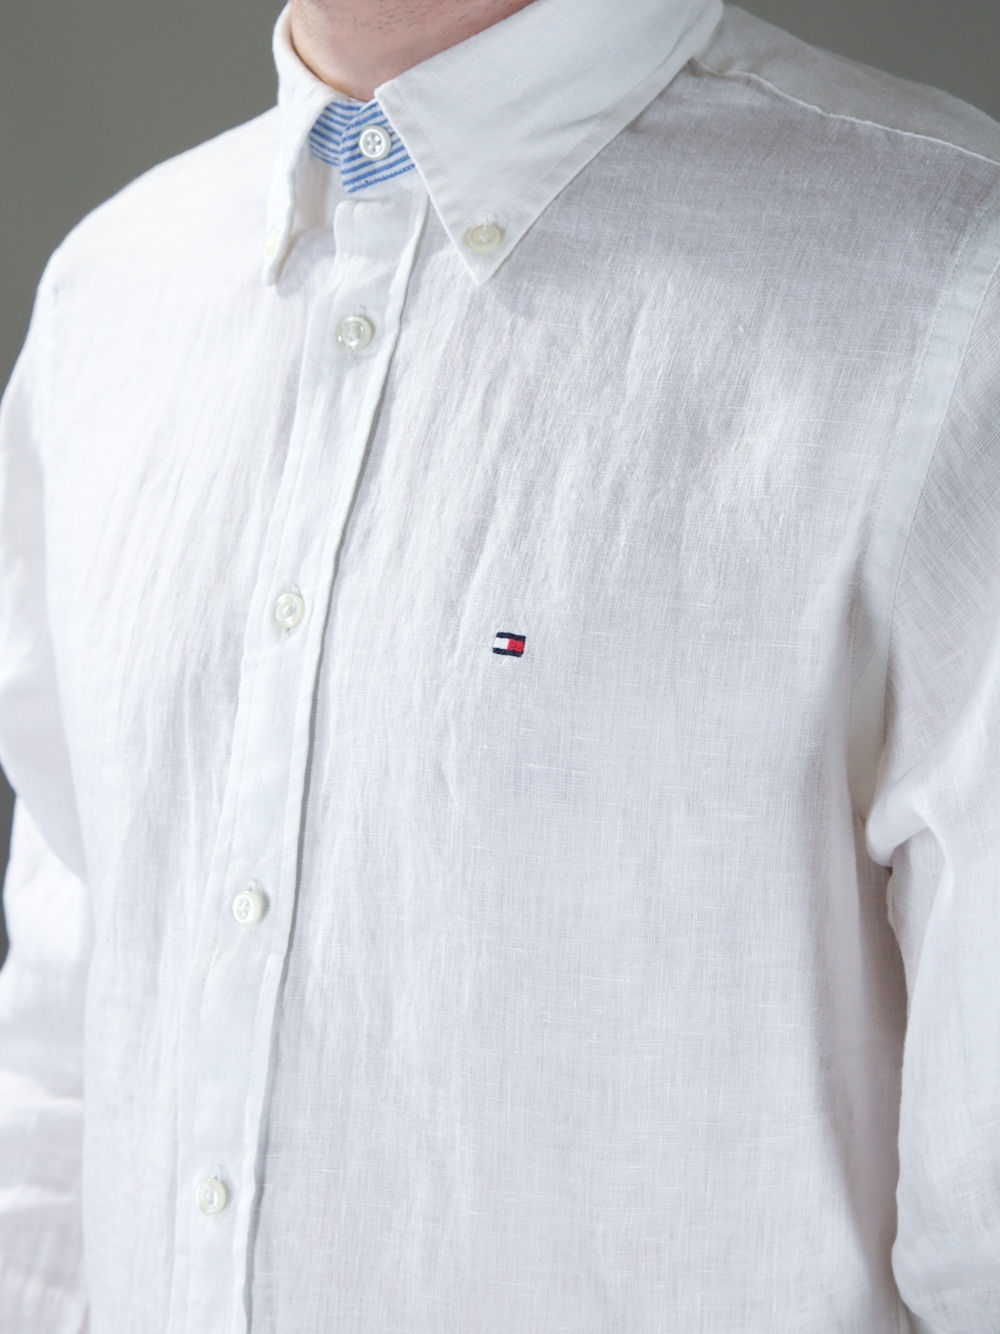 bf50681c3 Tommy Hilfiger Classic Linen Shirt in White for Men - Lyst